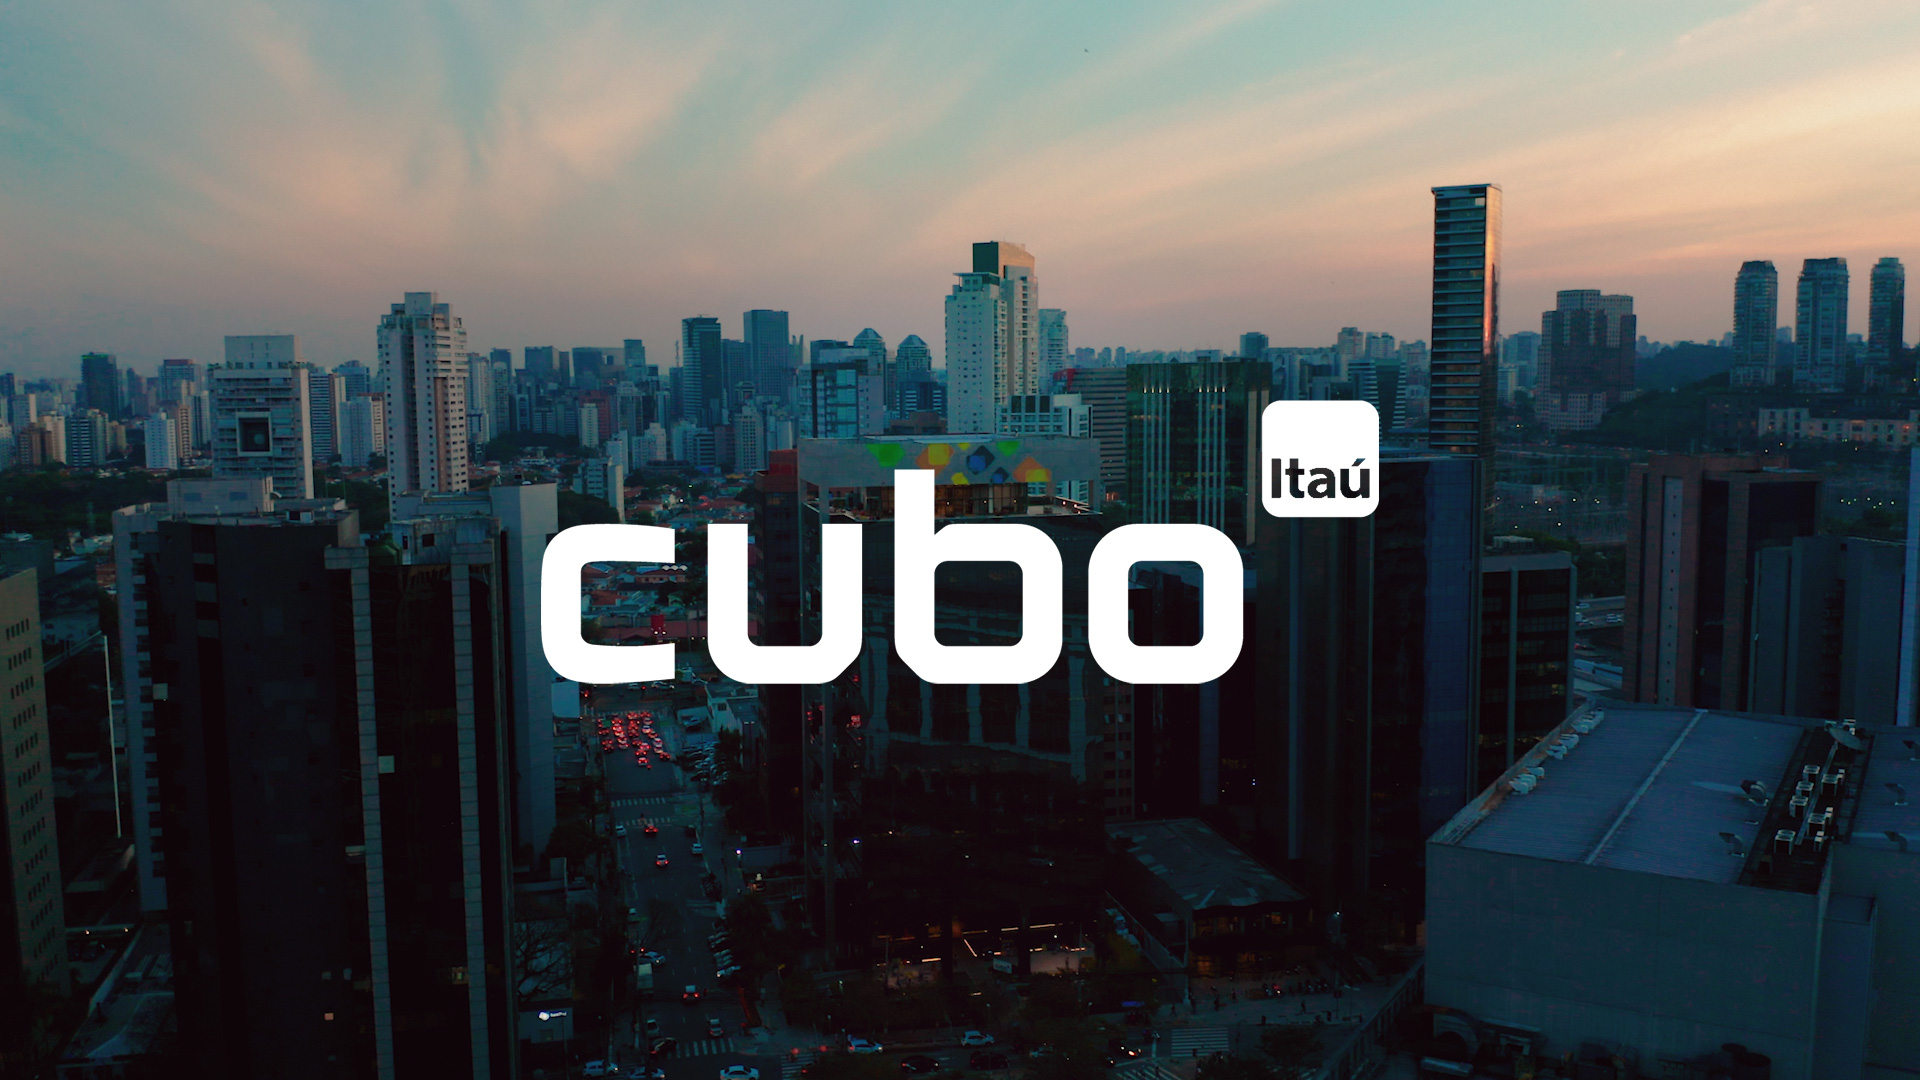 CUBO ITAÚ connection